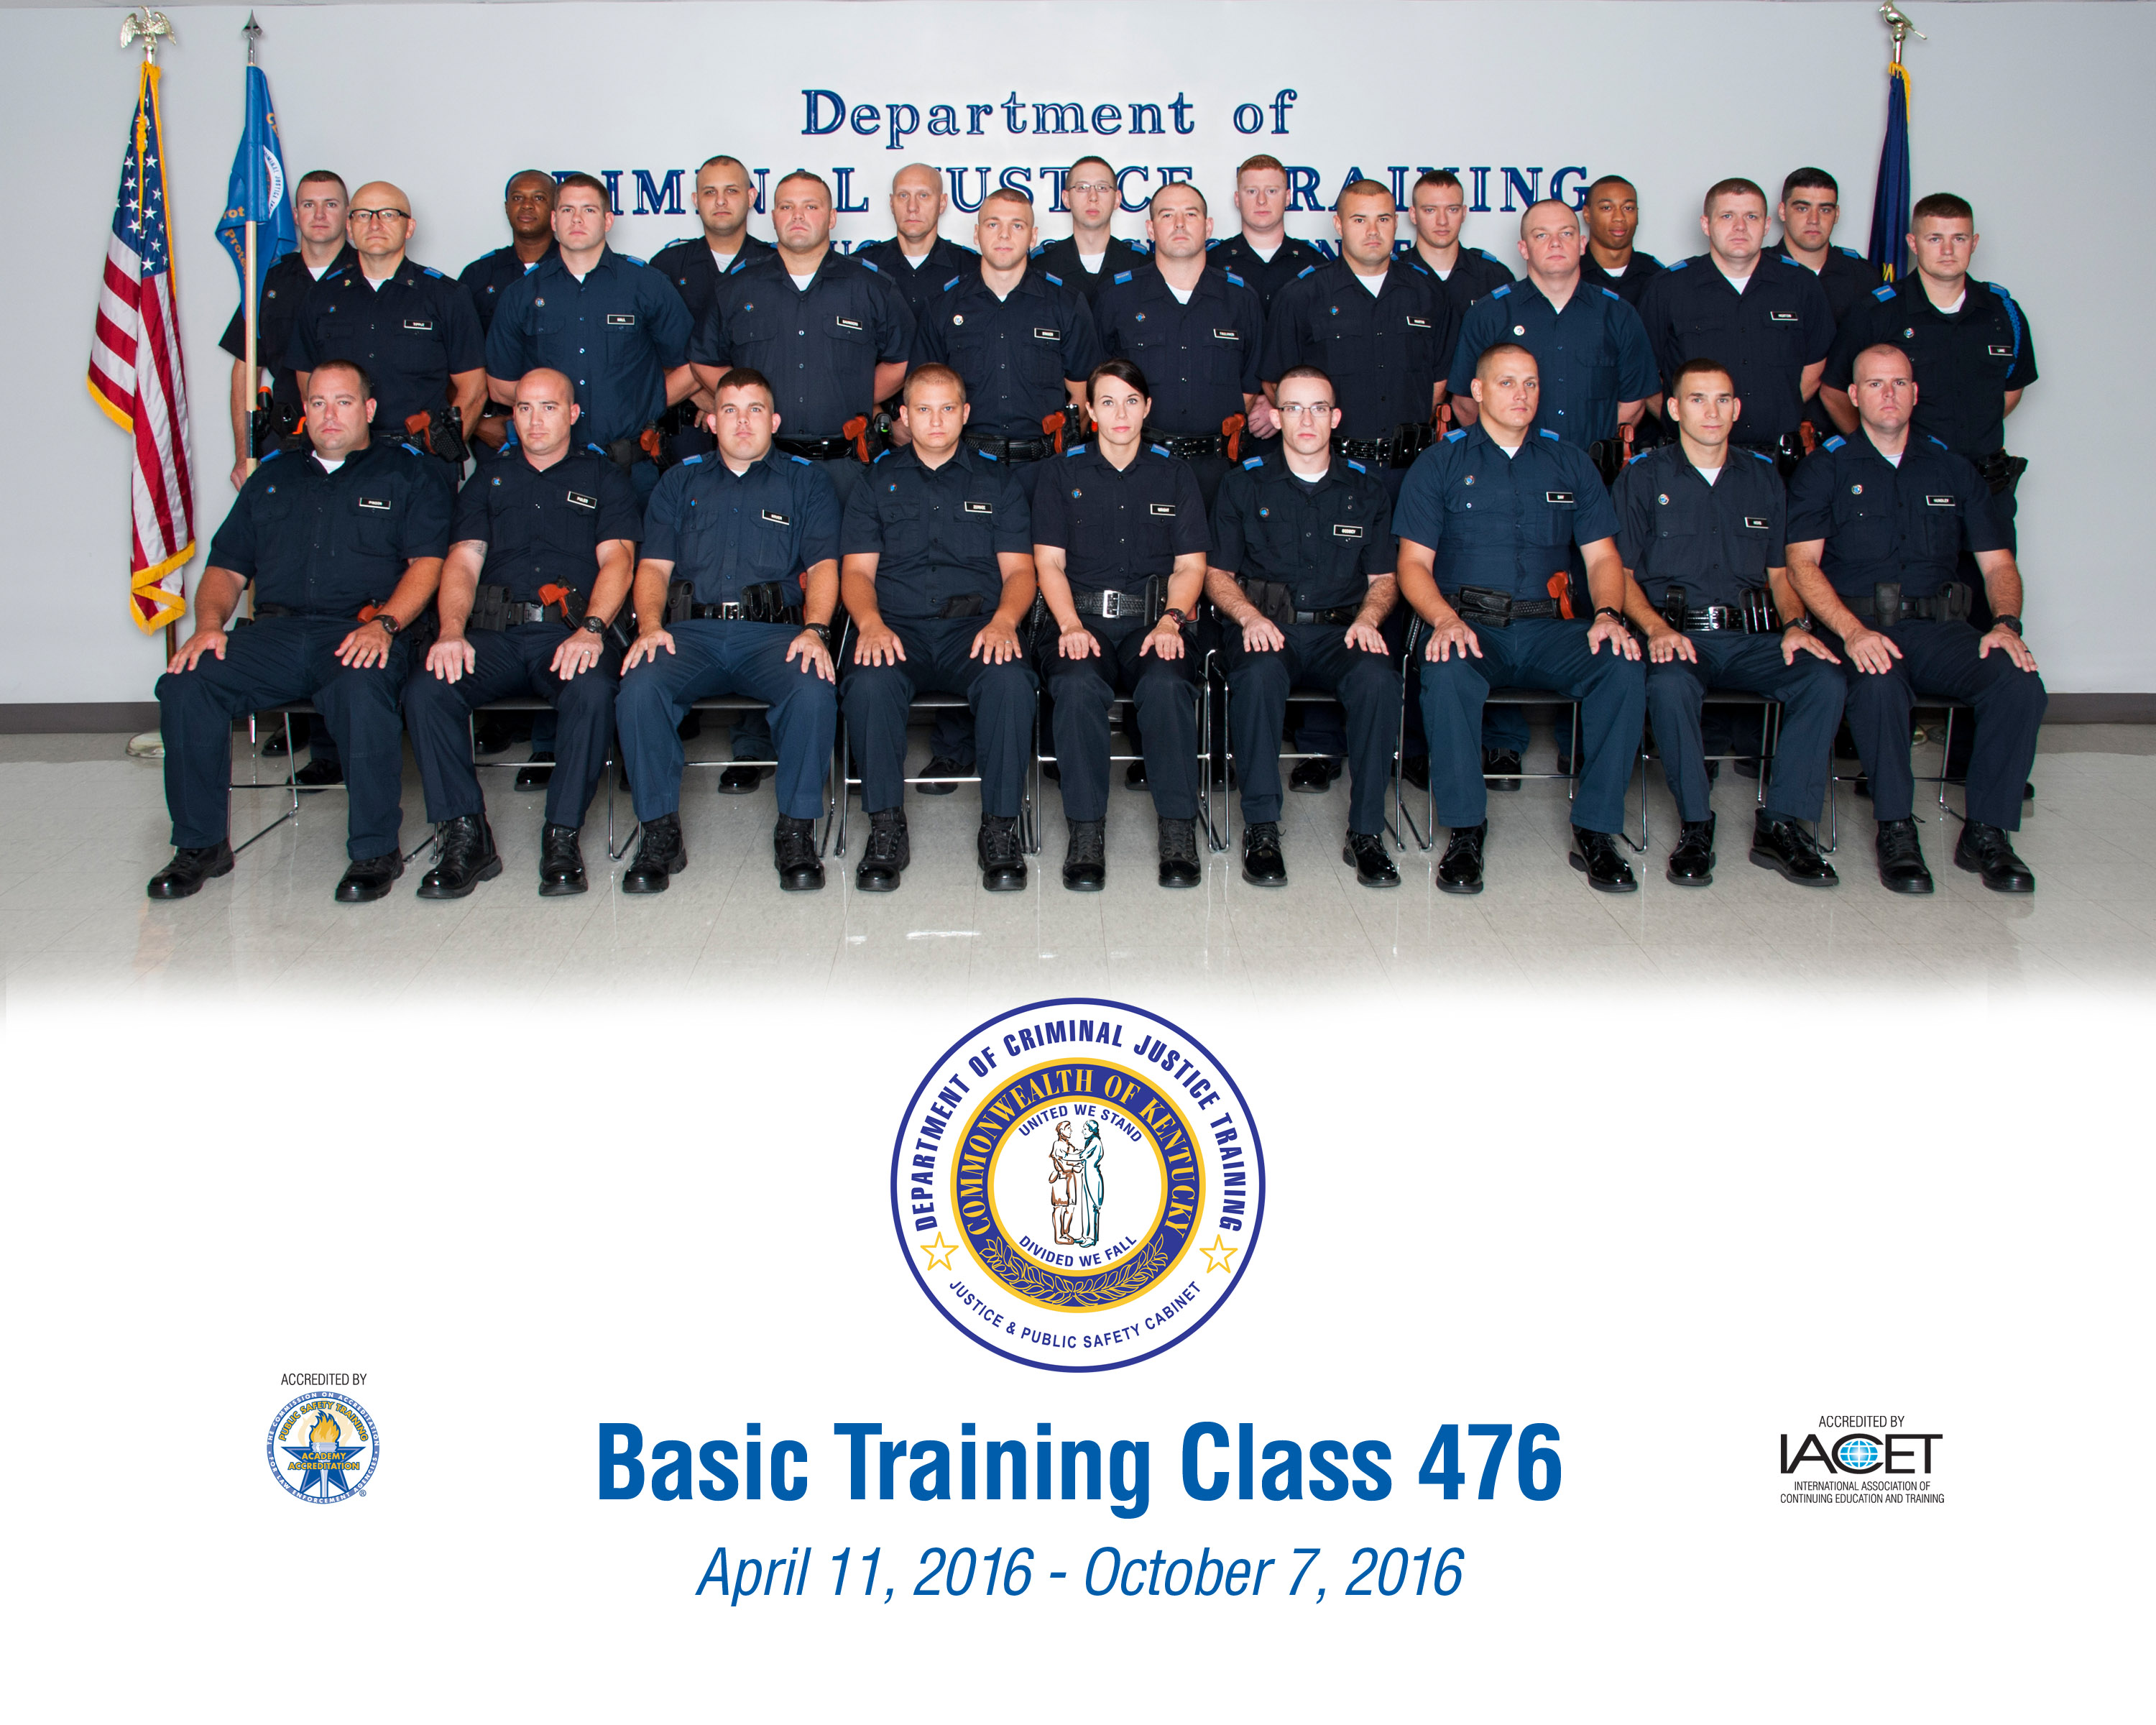 Two NKY officers graduate as part of Class 476 from training